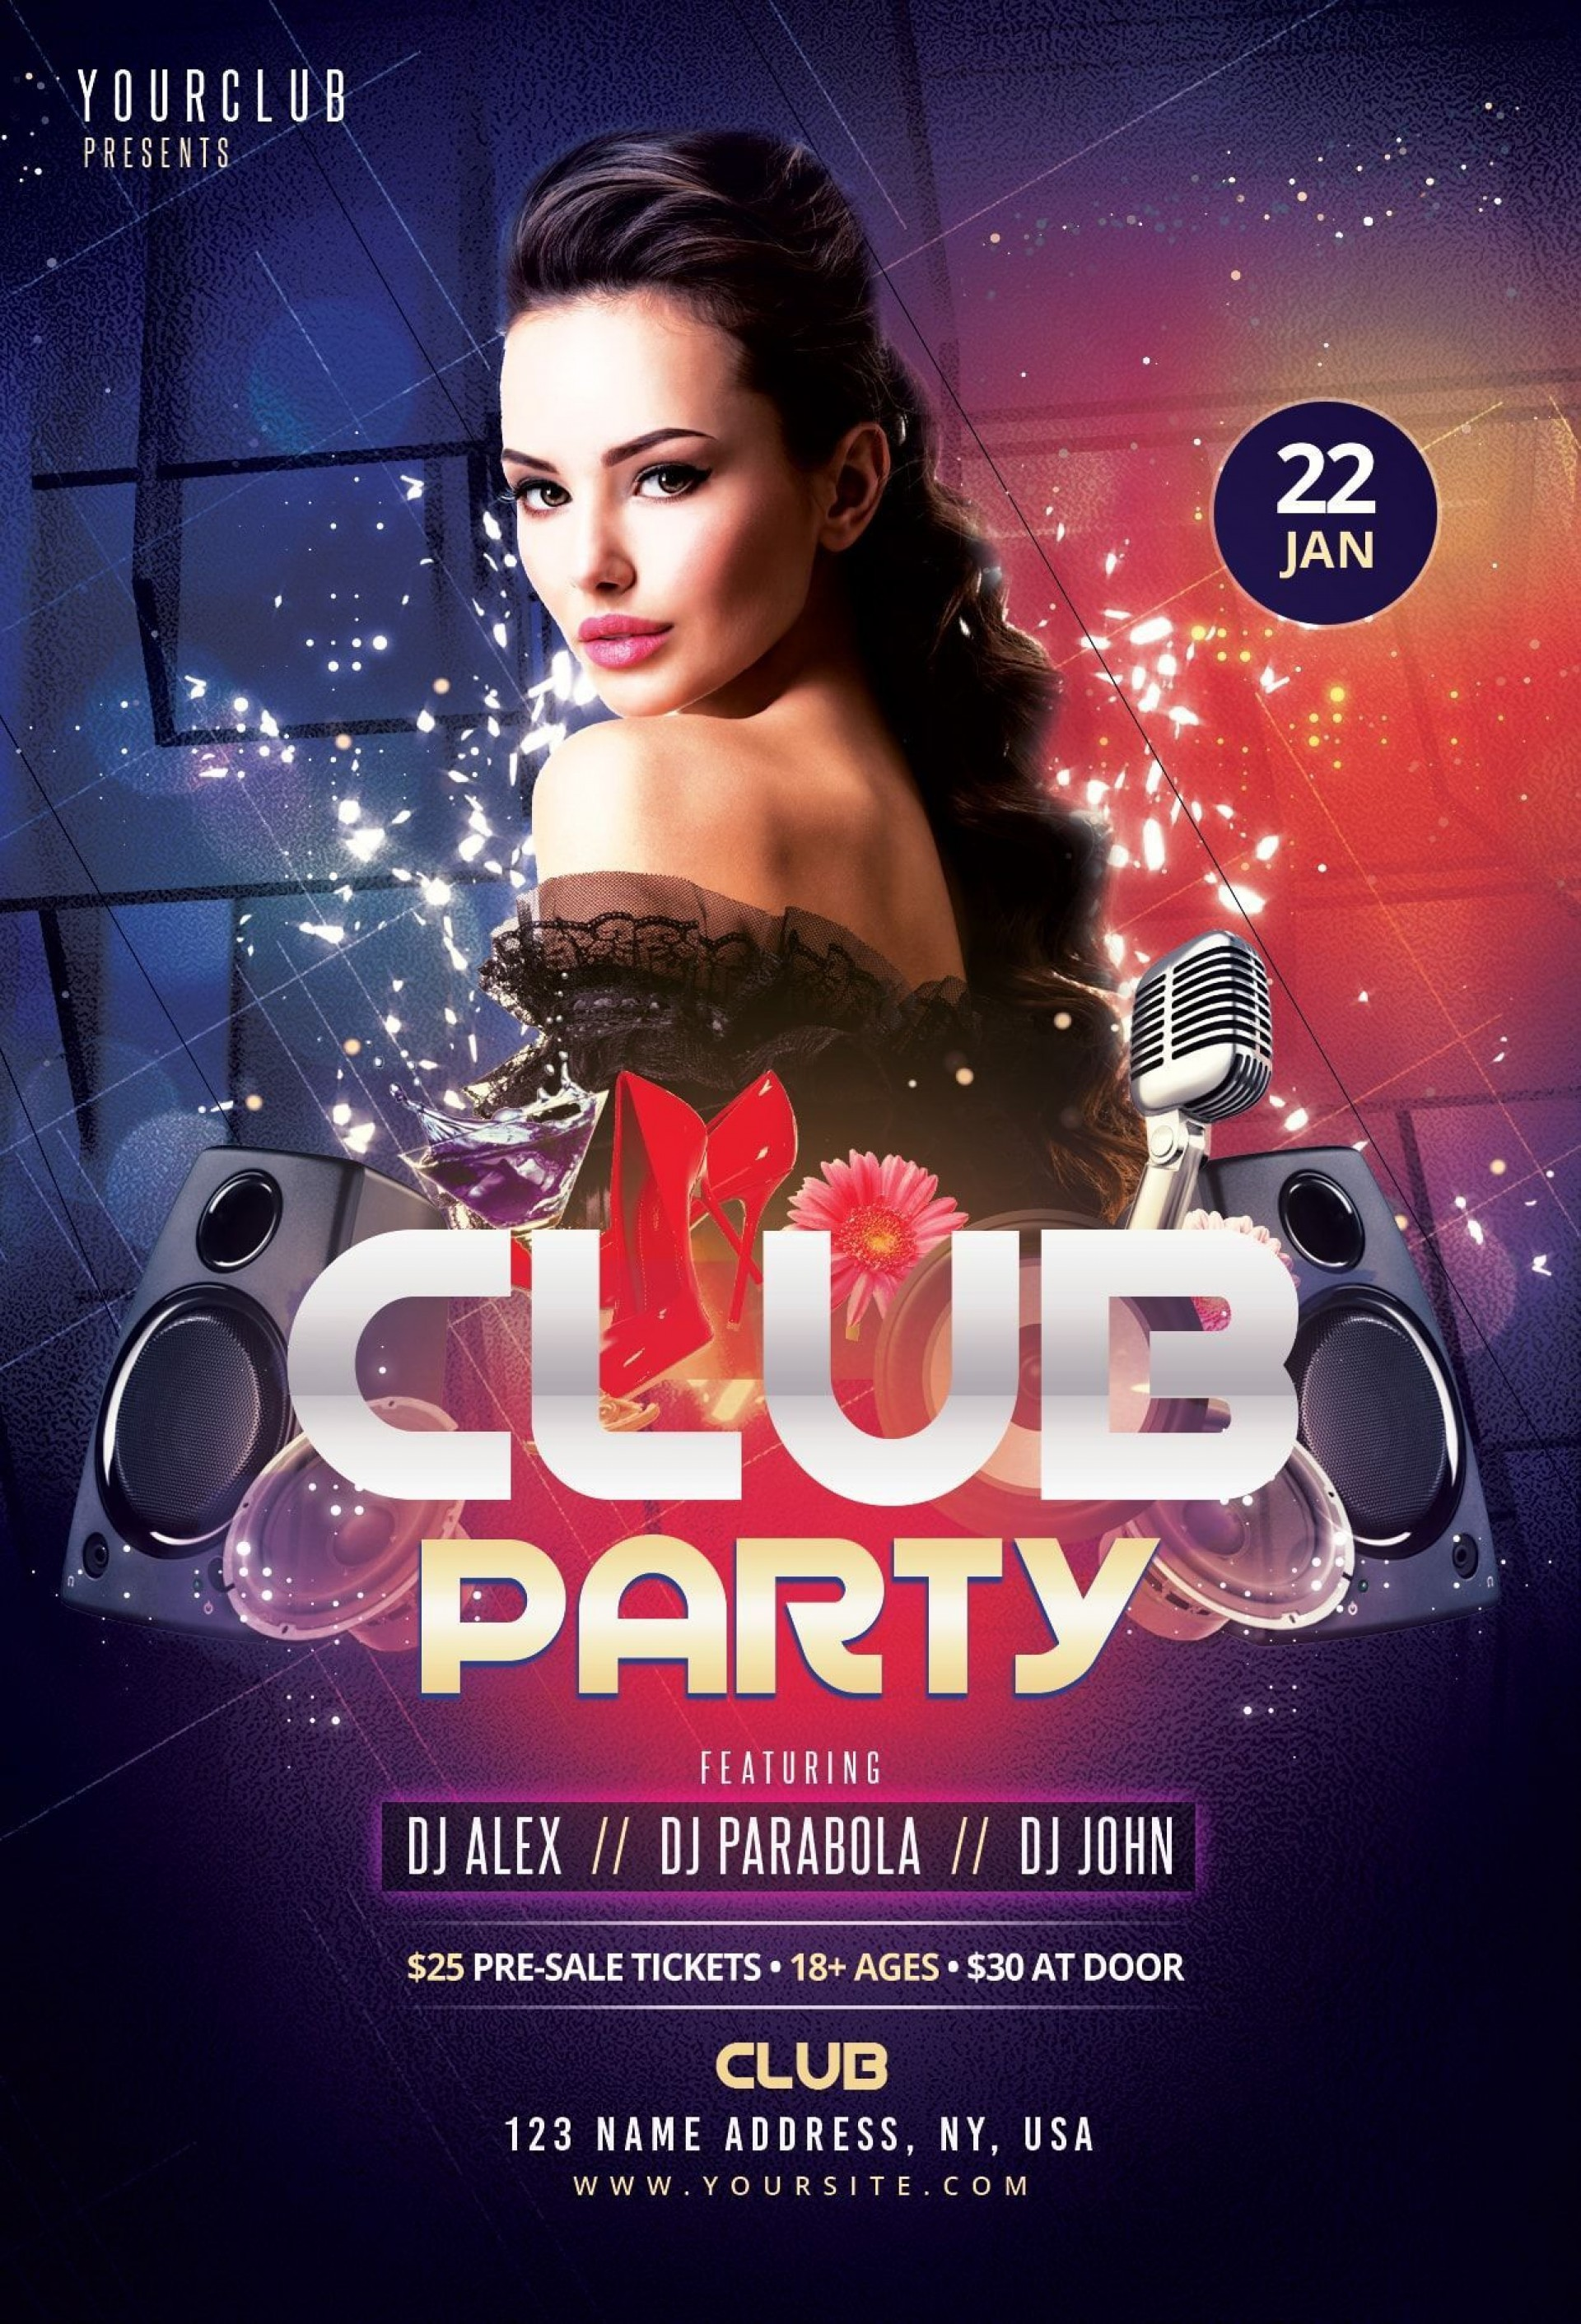 006 Unforgettable Club Party Flyer Template Free Concept 1920